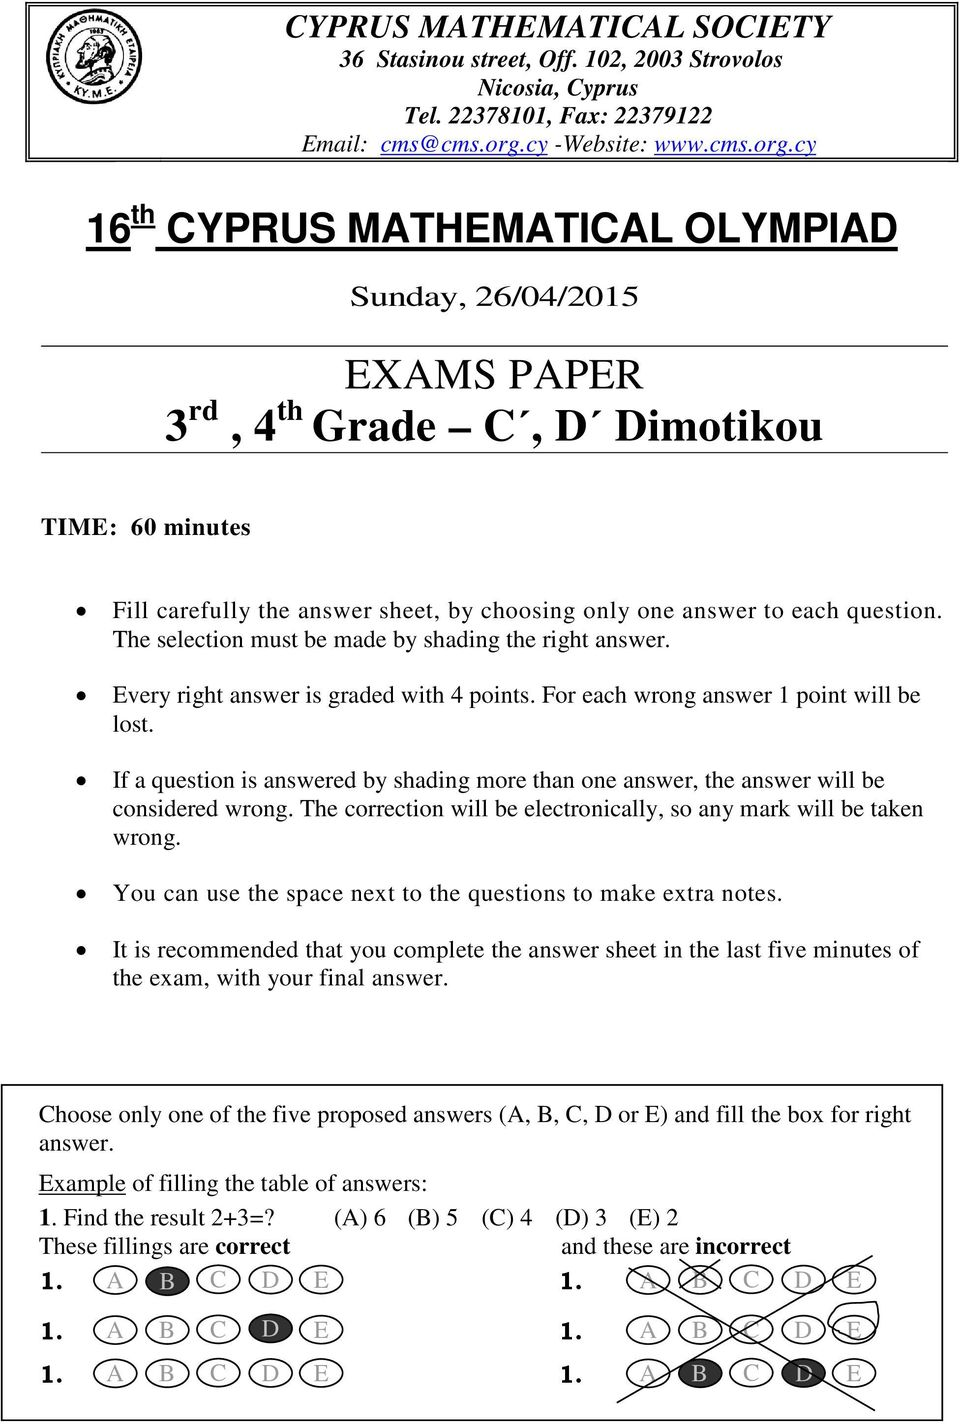 cy 16 th CYPRUS MATHEMATICAL OLYMPIAD Sunday, 26/04/2015 EXAMS PAPER 3 rd, 4 th Grade C, D Dimotikou TIME: 60 minutes Fill carefully the answer sheet, by choosing only one answer to each question.